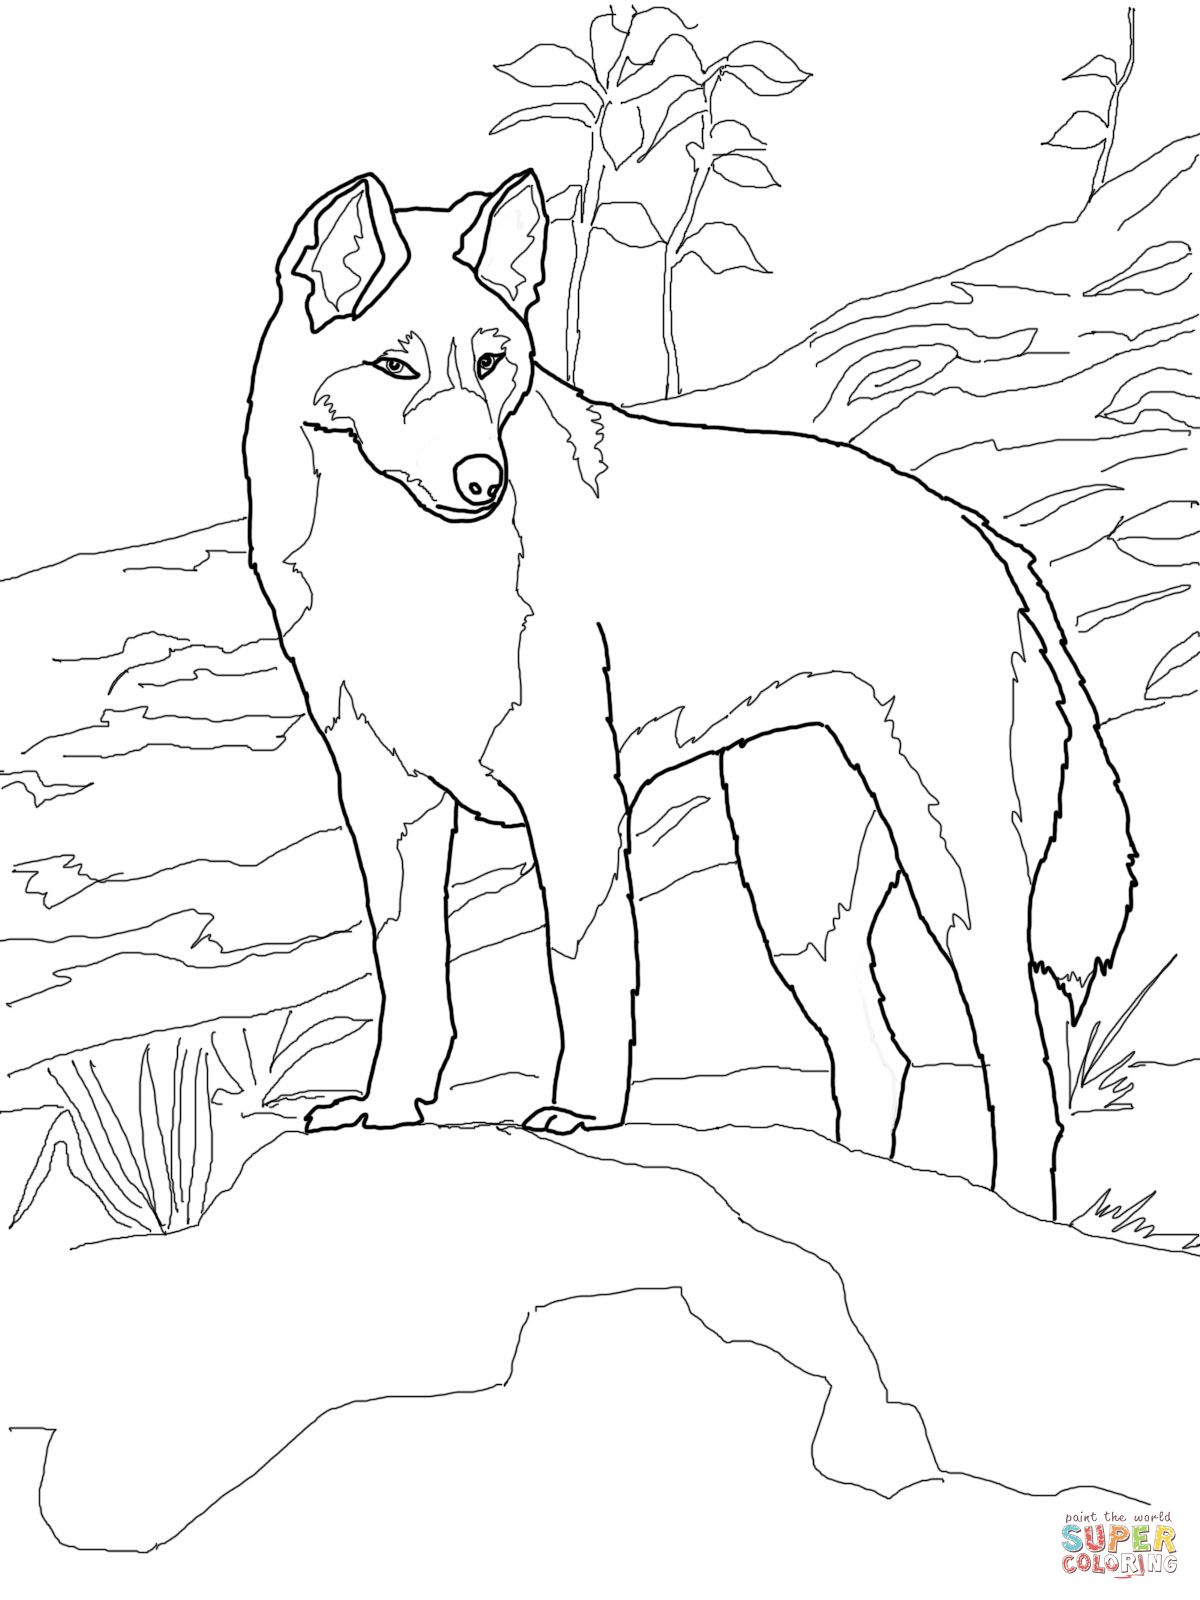 Dingo from Australia coloring page | SuperColoring.com ... | free printable colouring pages australian animals